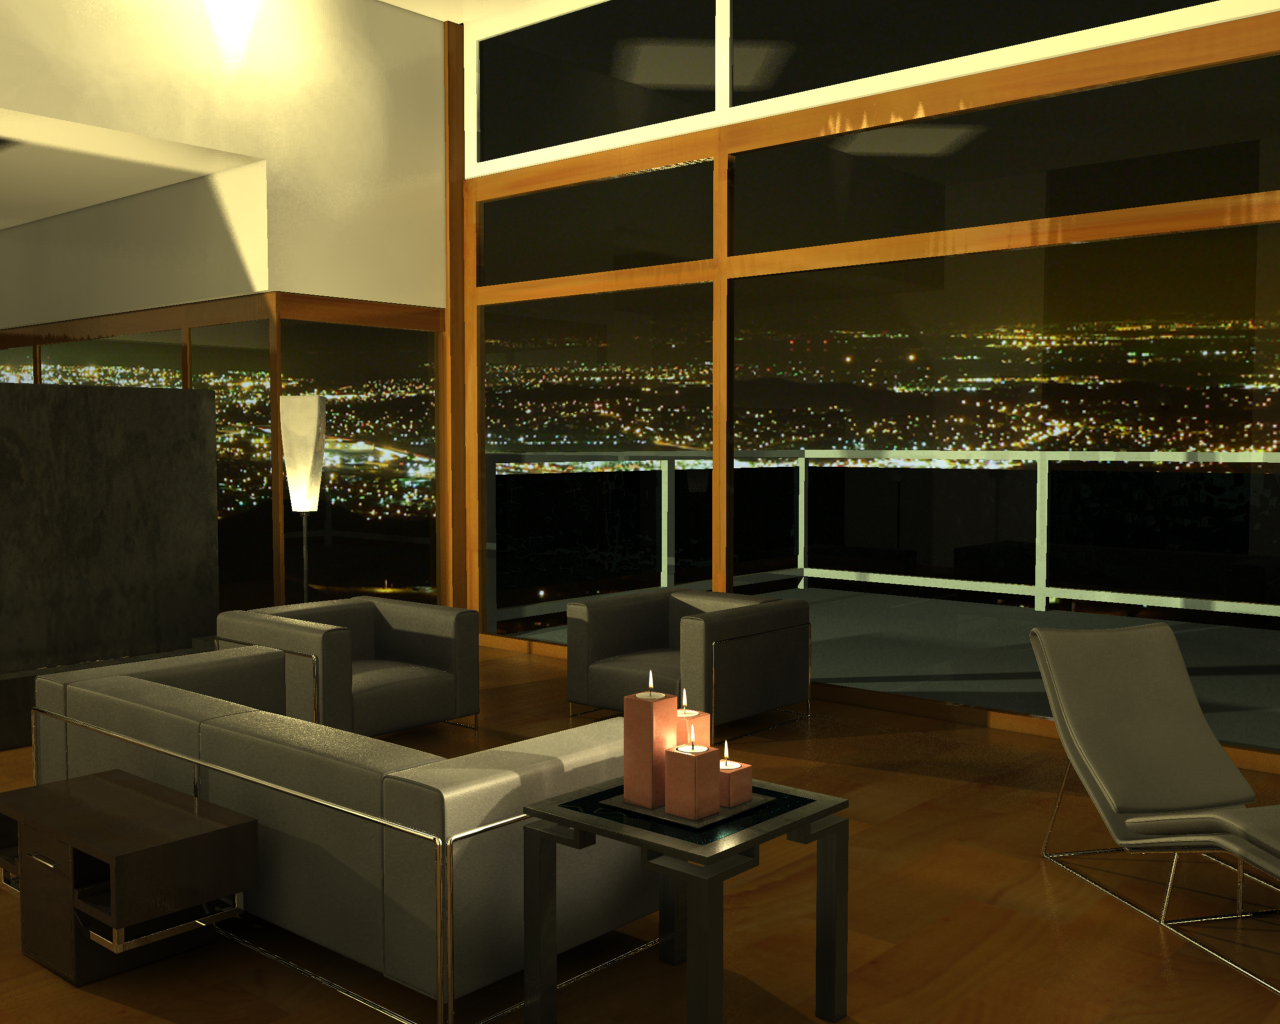 Baltar S Apartment Night By Dwair